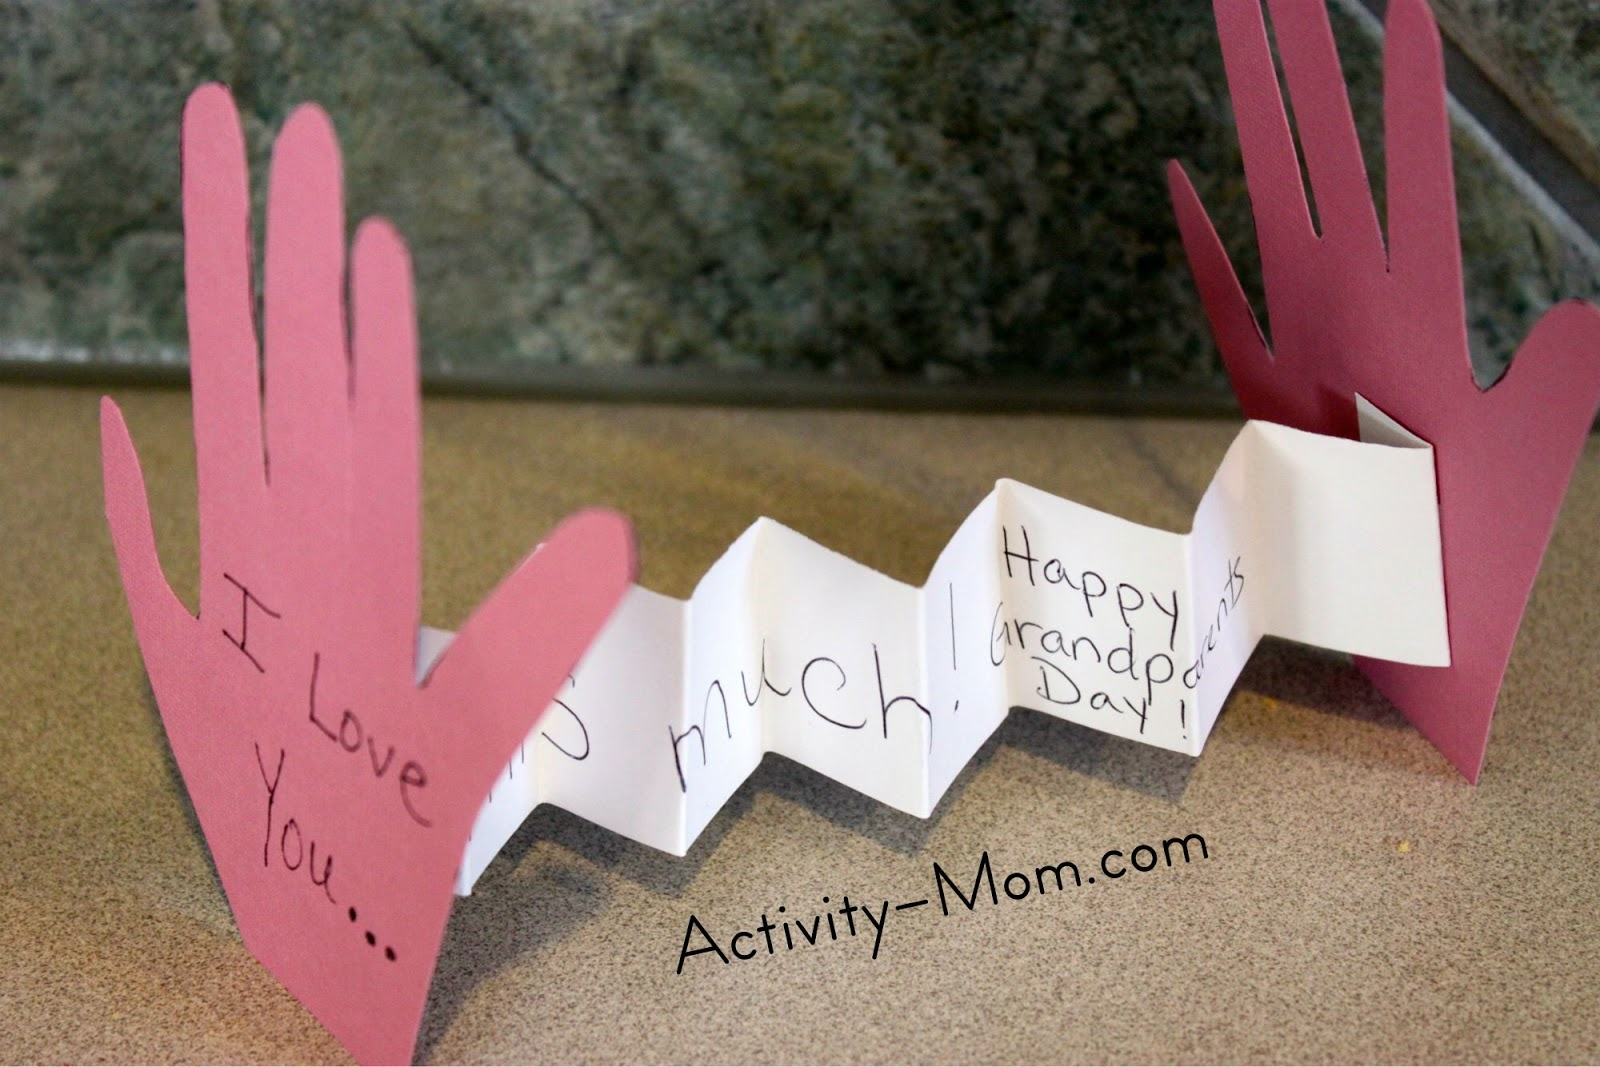 Grandparents Day Craft Ideas For Kids Part - 39: AOL Search